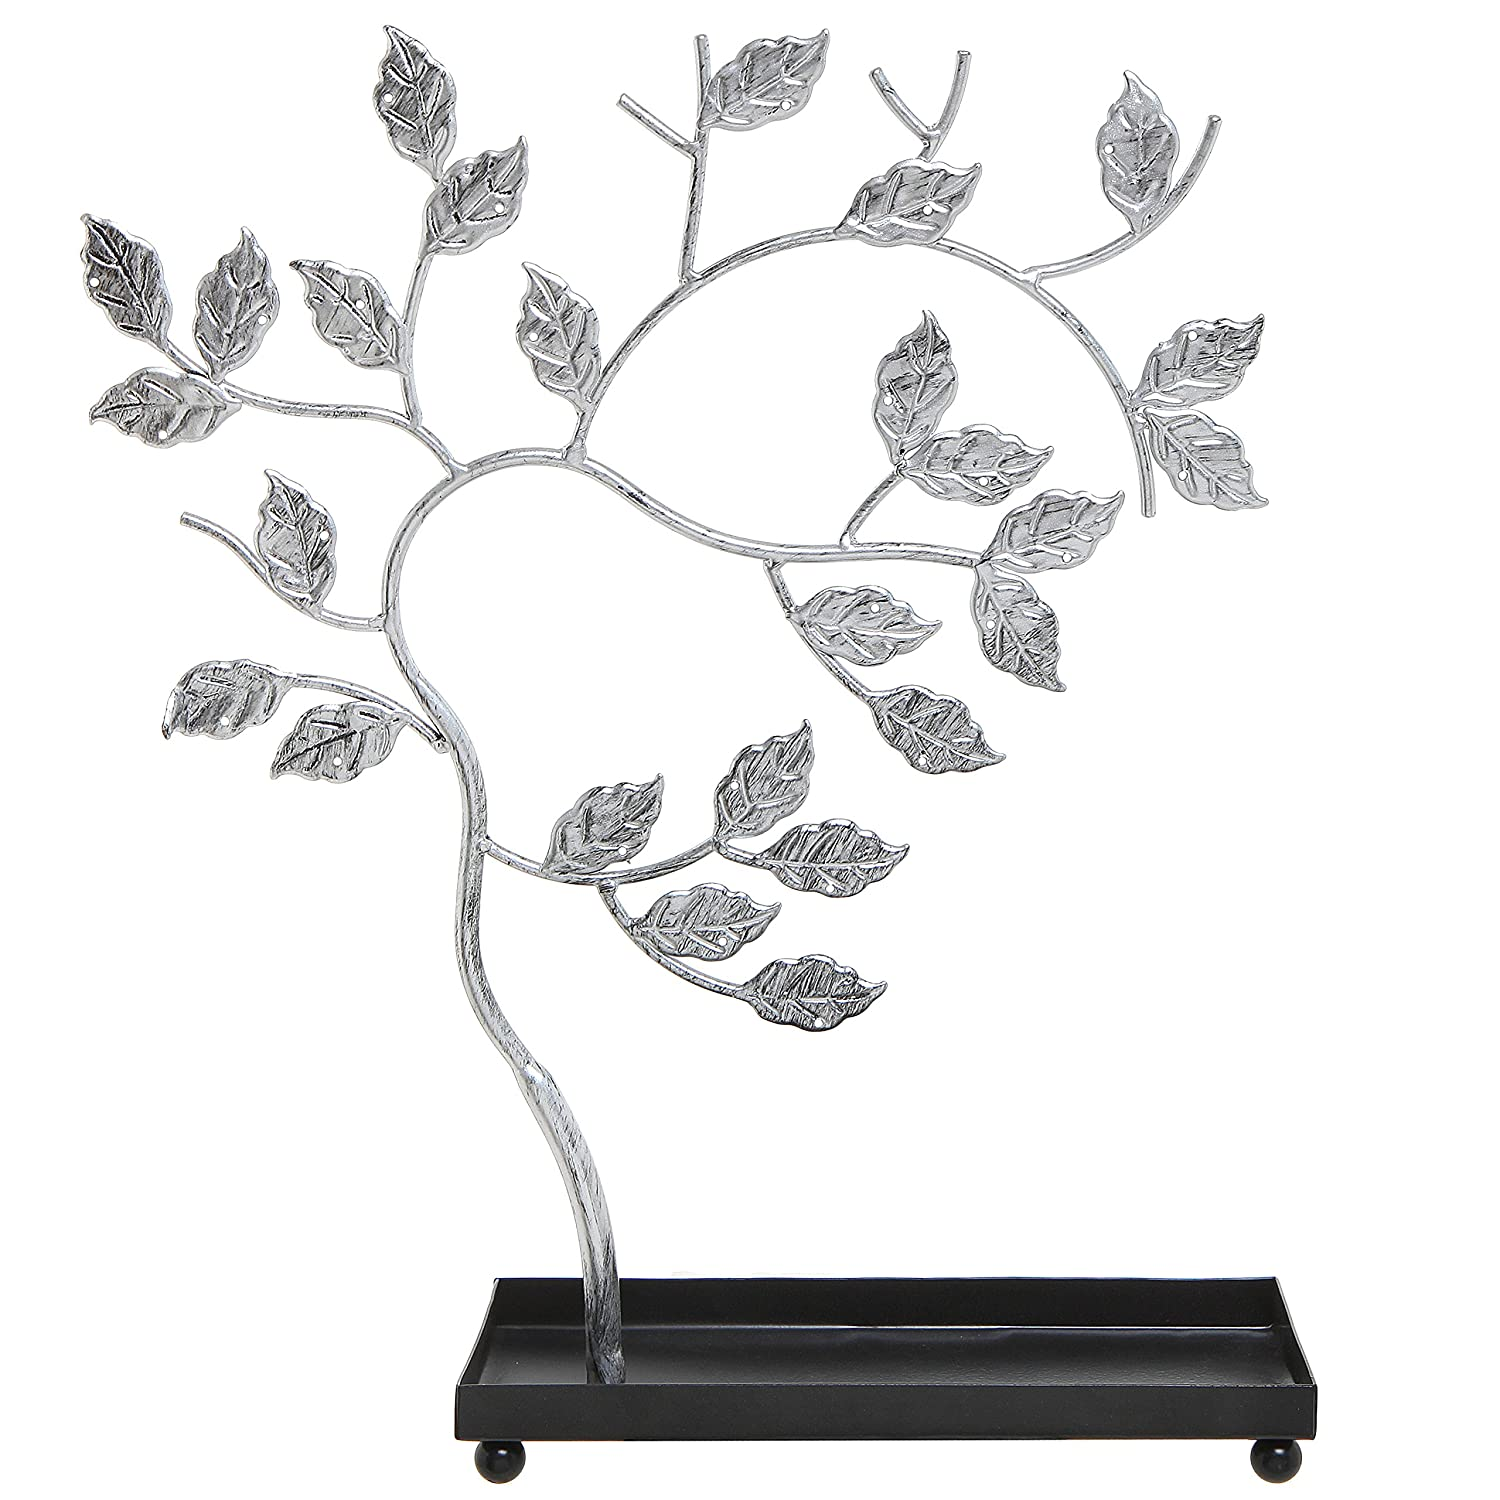 Silver-Tone Metal Jewelry Tree, Necklace, Bracelets & Earrings Hanger Display Stand Rack w/Ring Tray MyGift TB-J0174SIL